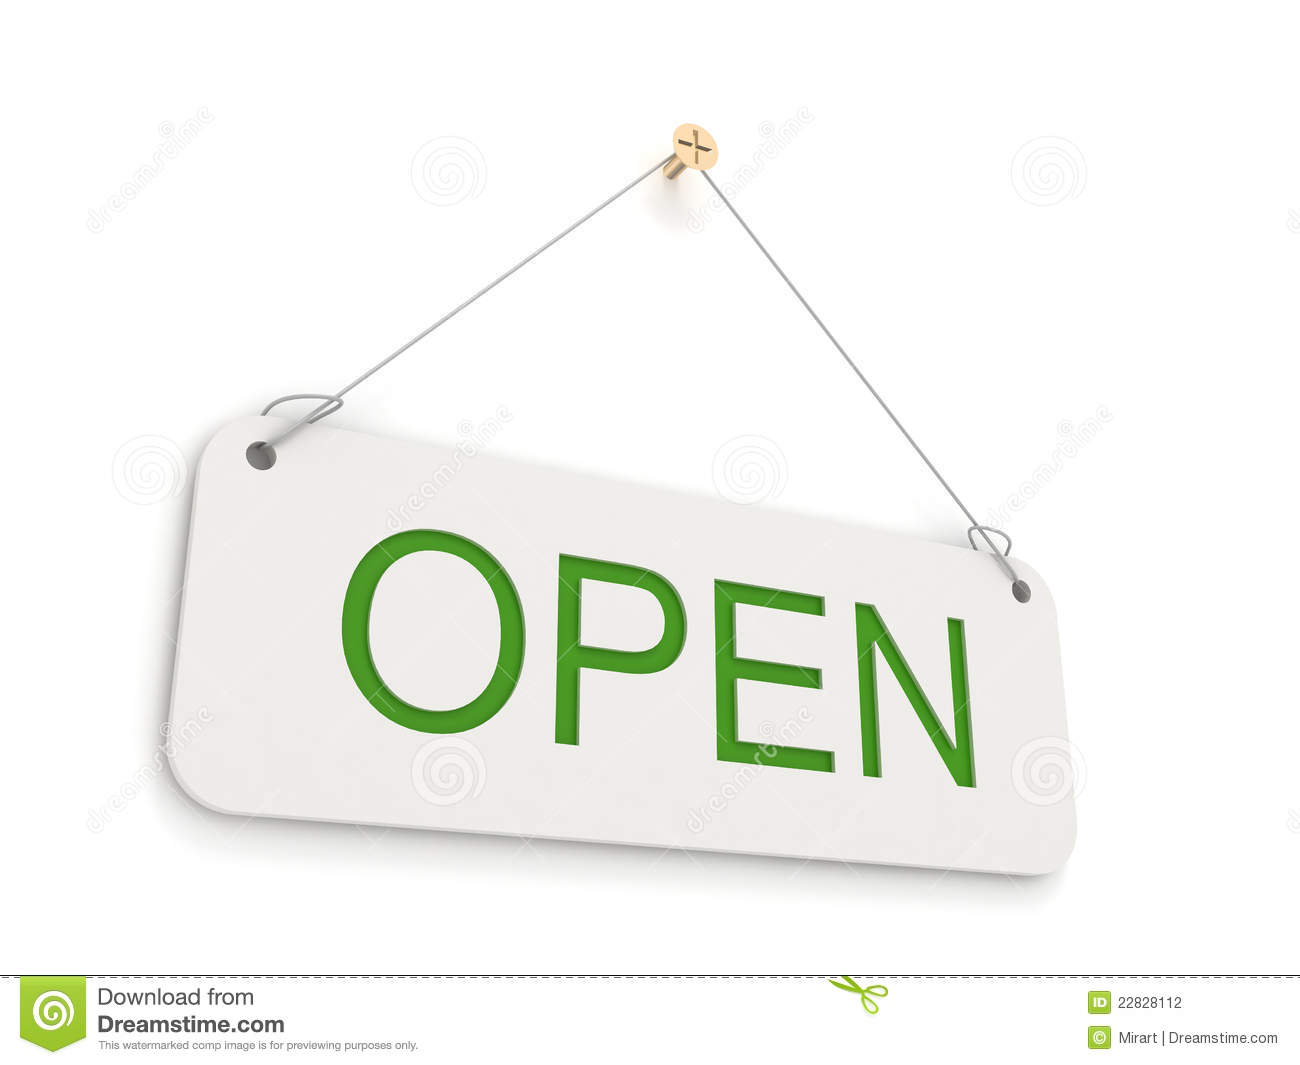 Http Www Dreamstime Com Stock Photography Open Sign Image22828112